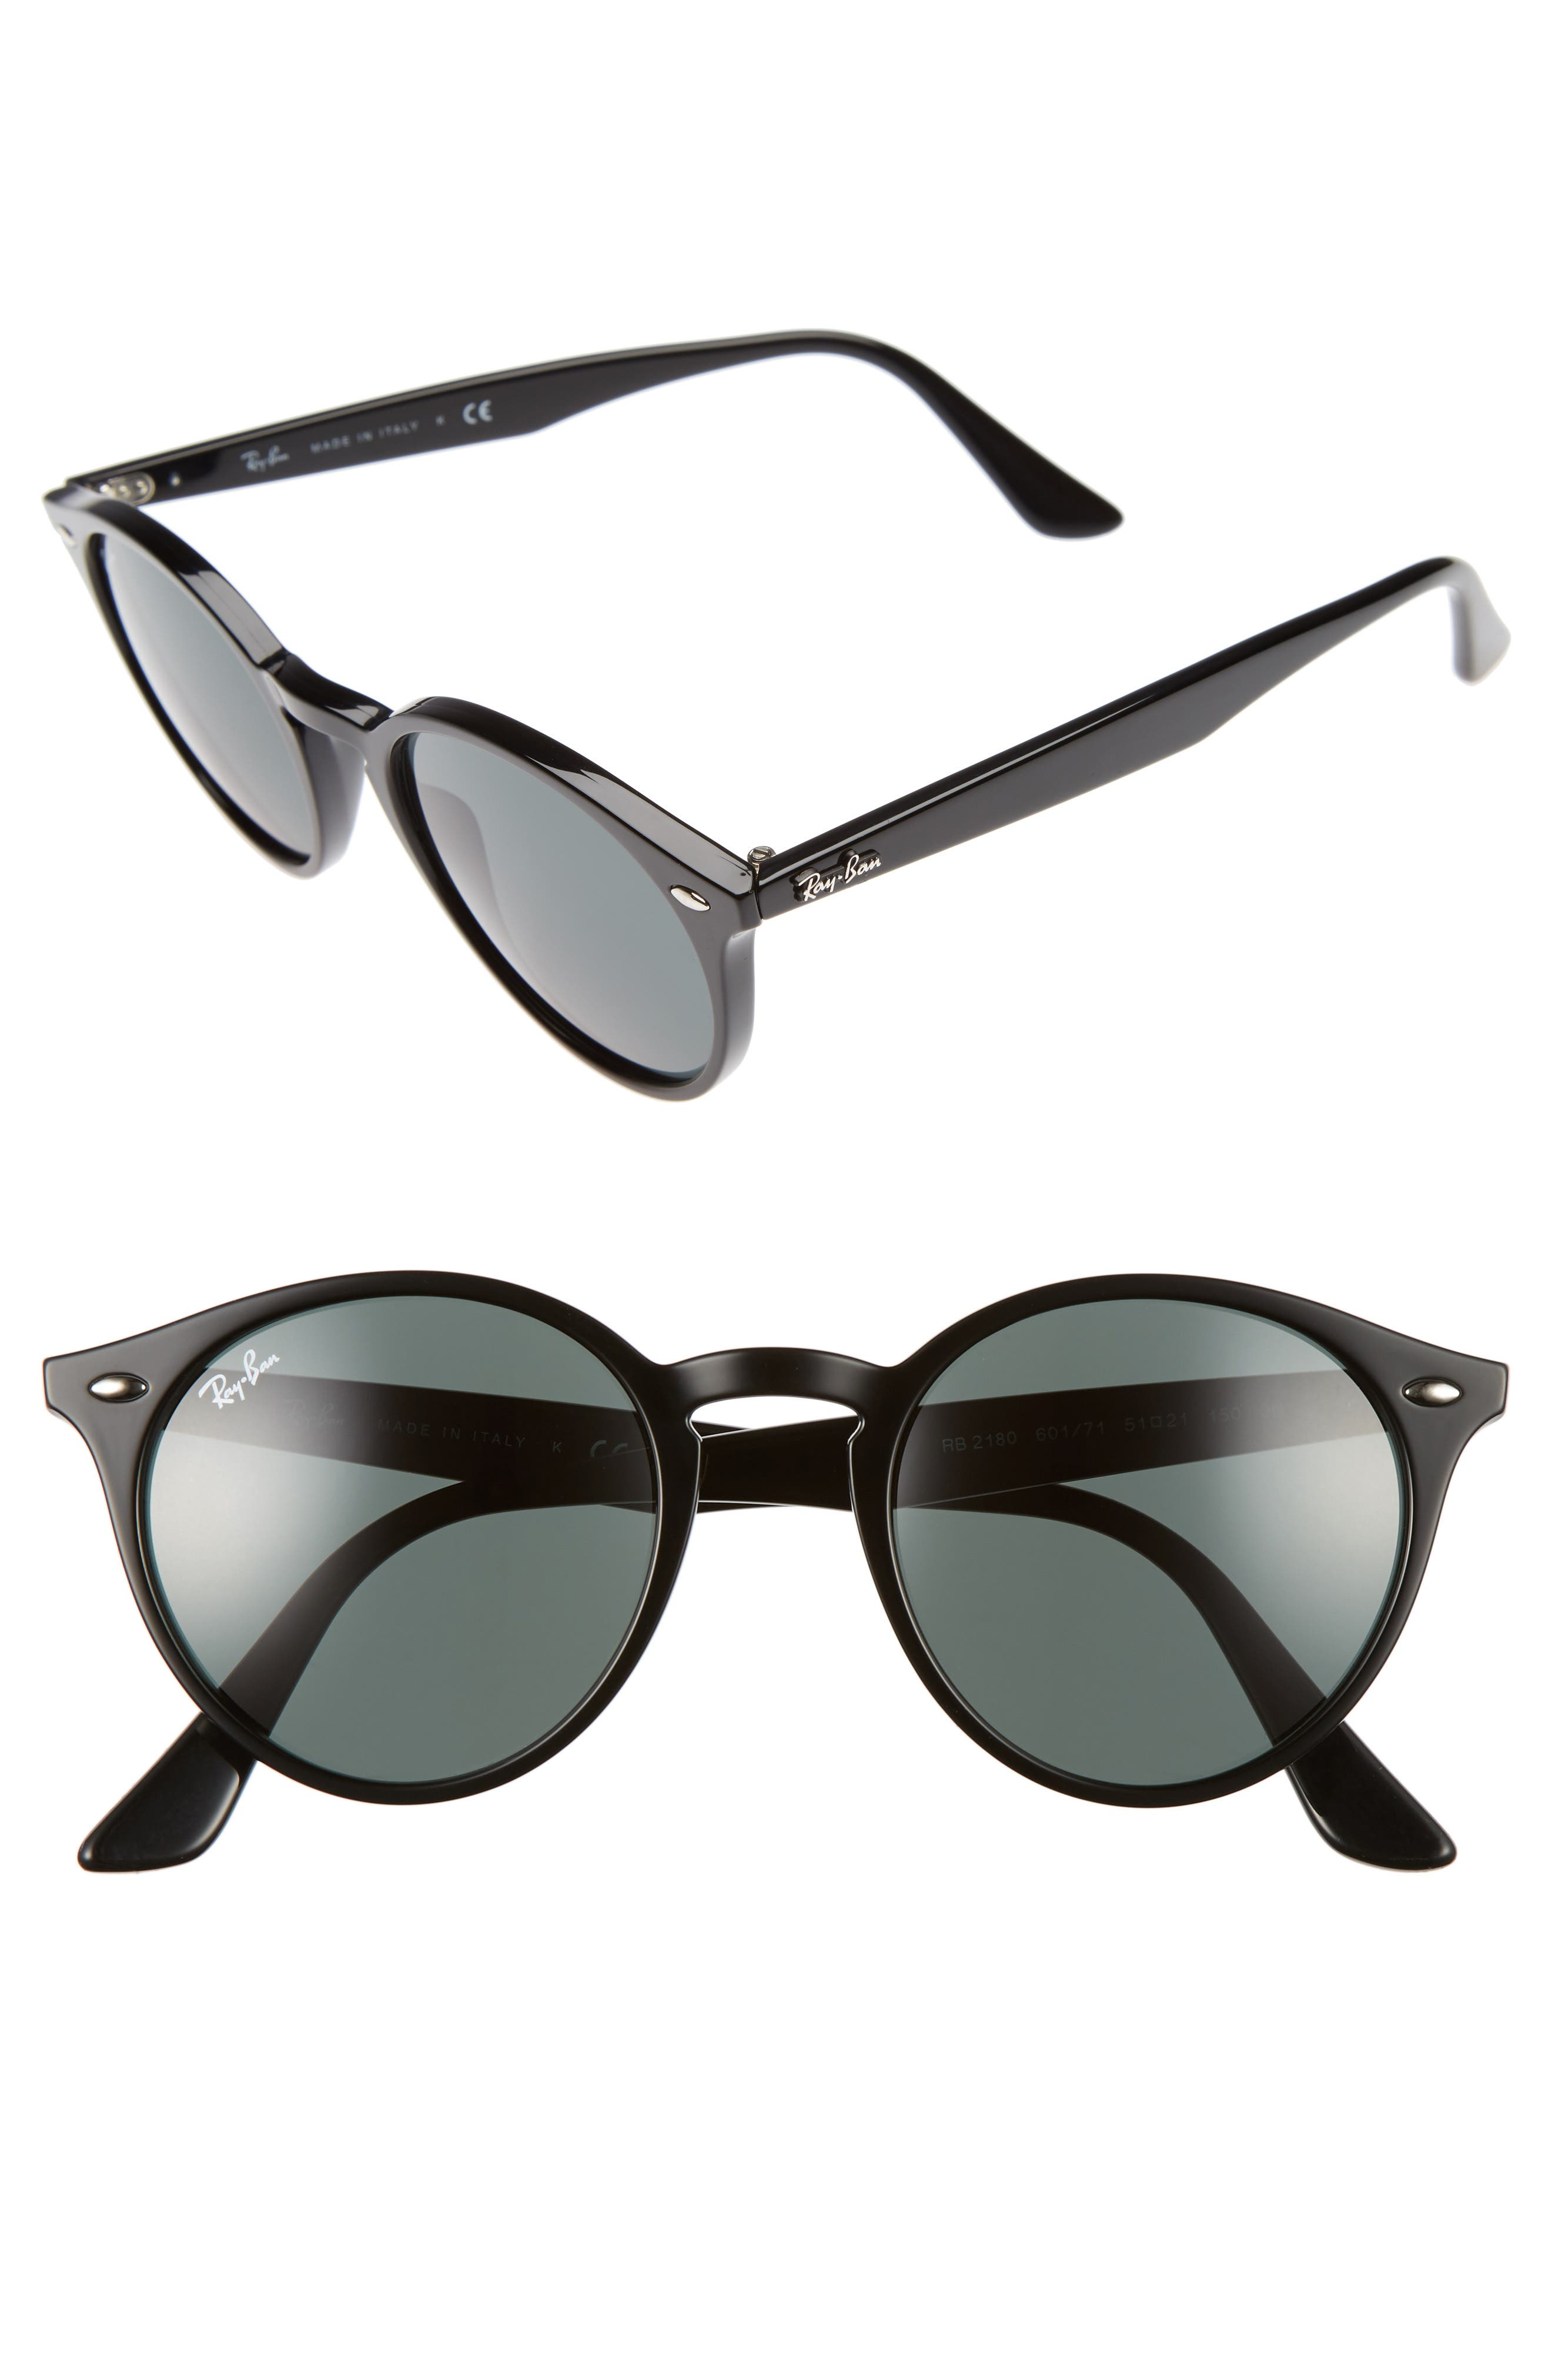 Highstreet 51mm Round Sunglasses,                         Main,                         color, Black